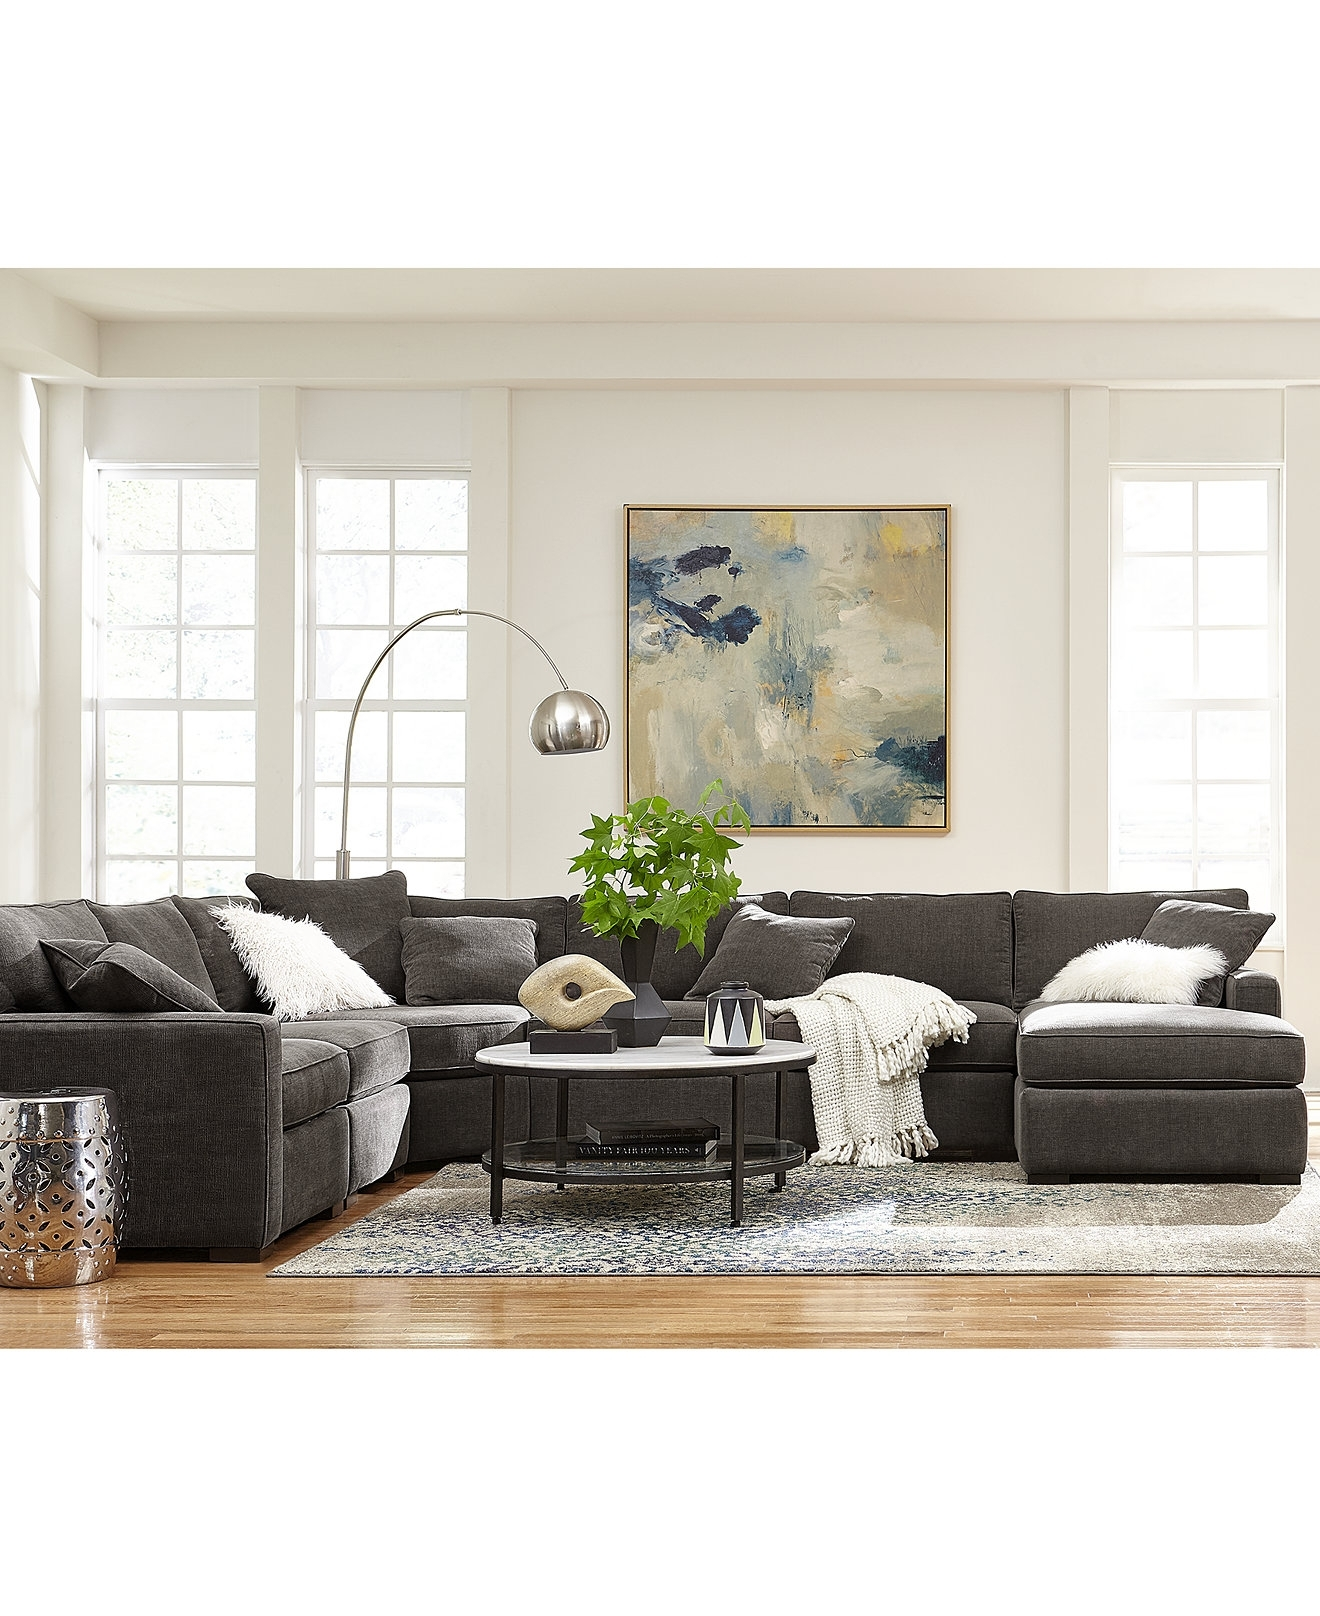 5 Piece Living Room Sets 3 Piece Living Room Set Under $500 with regard to Sectional Sofas Under 700